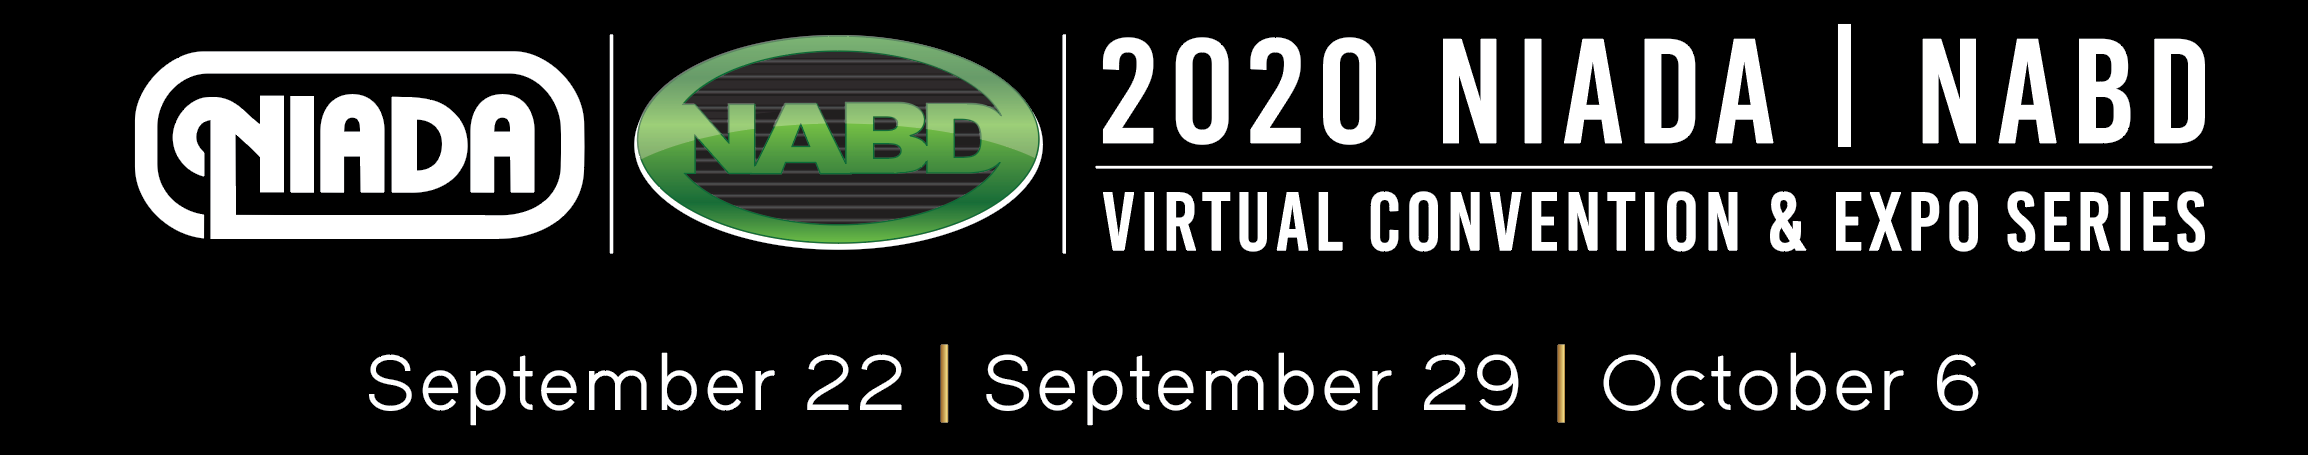 2020 NIADA|NABD Virtual Convention & Expo Series